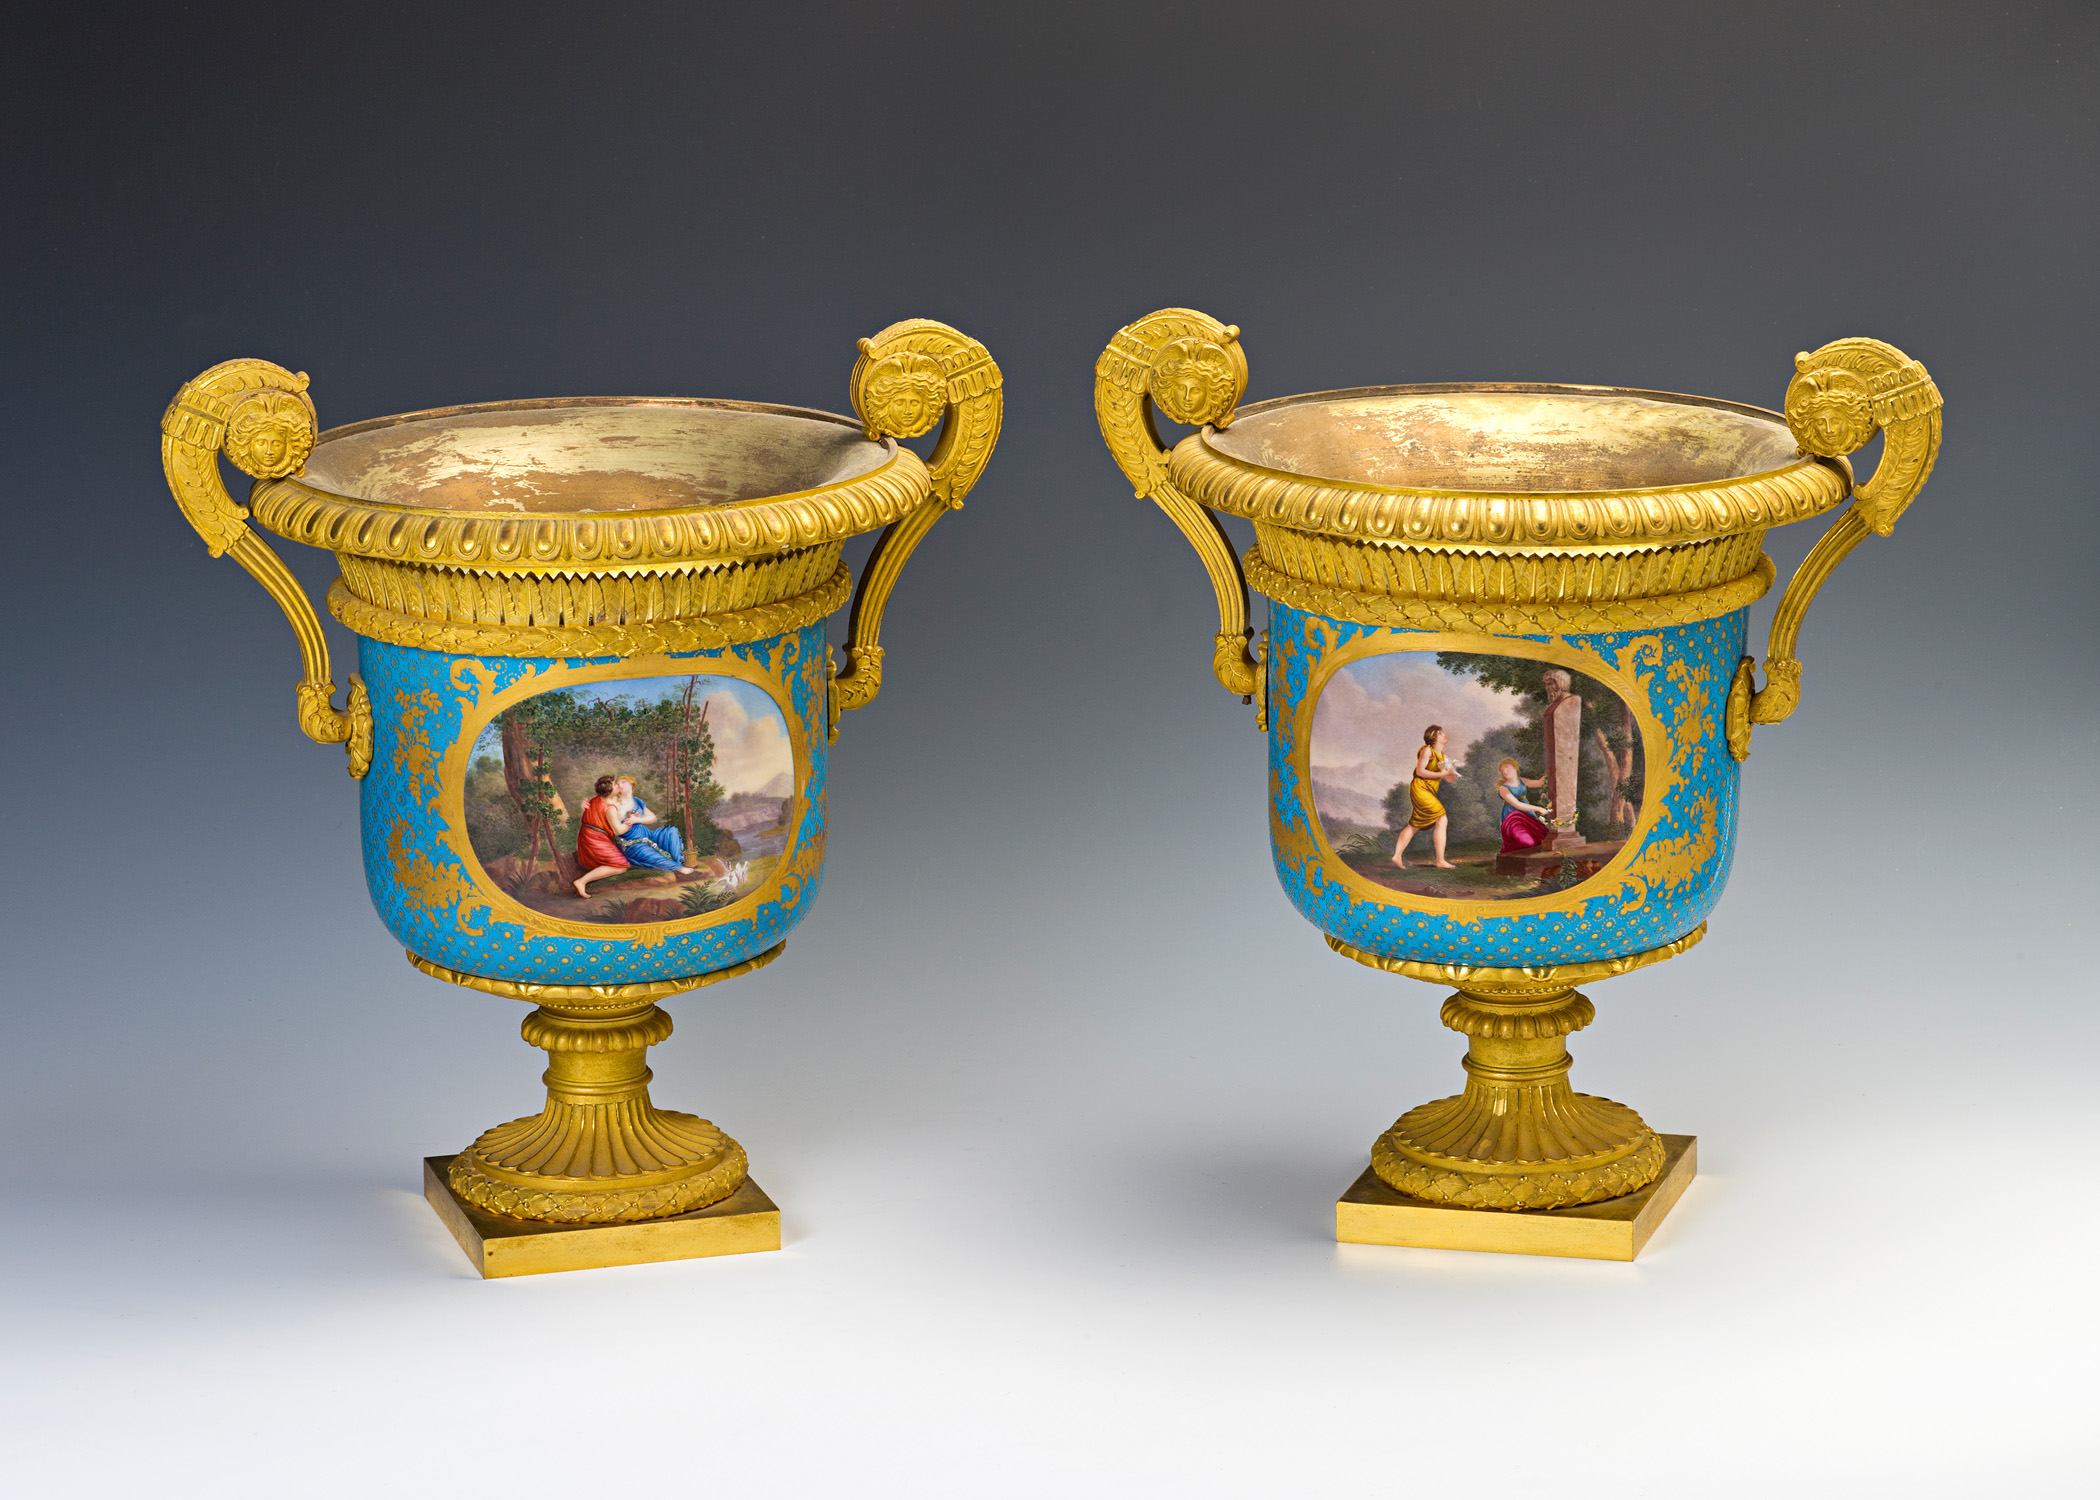 A pair of gilt-bronze-mounted Sèvres-style cachepots, 19th Century.